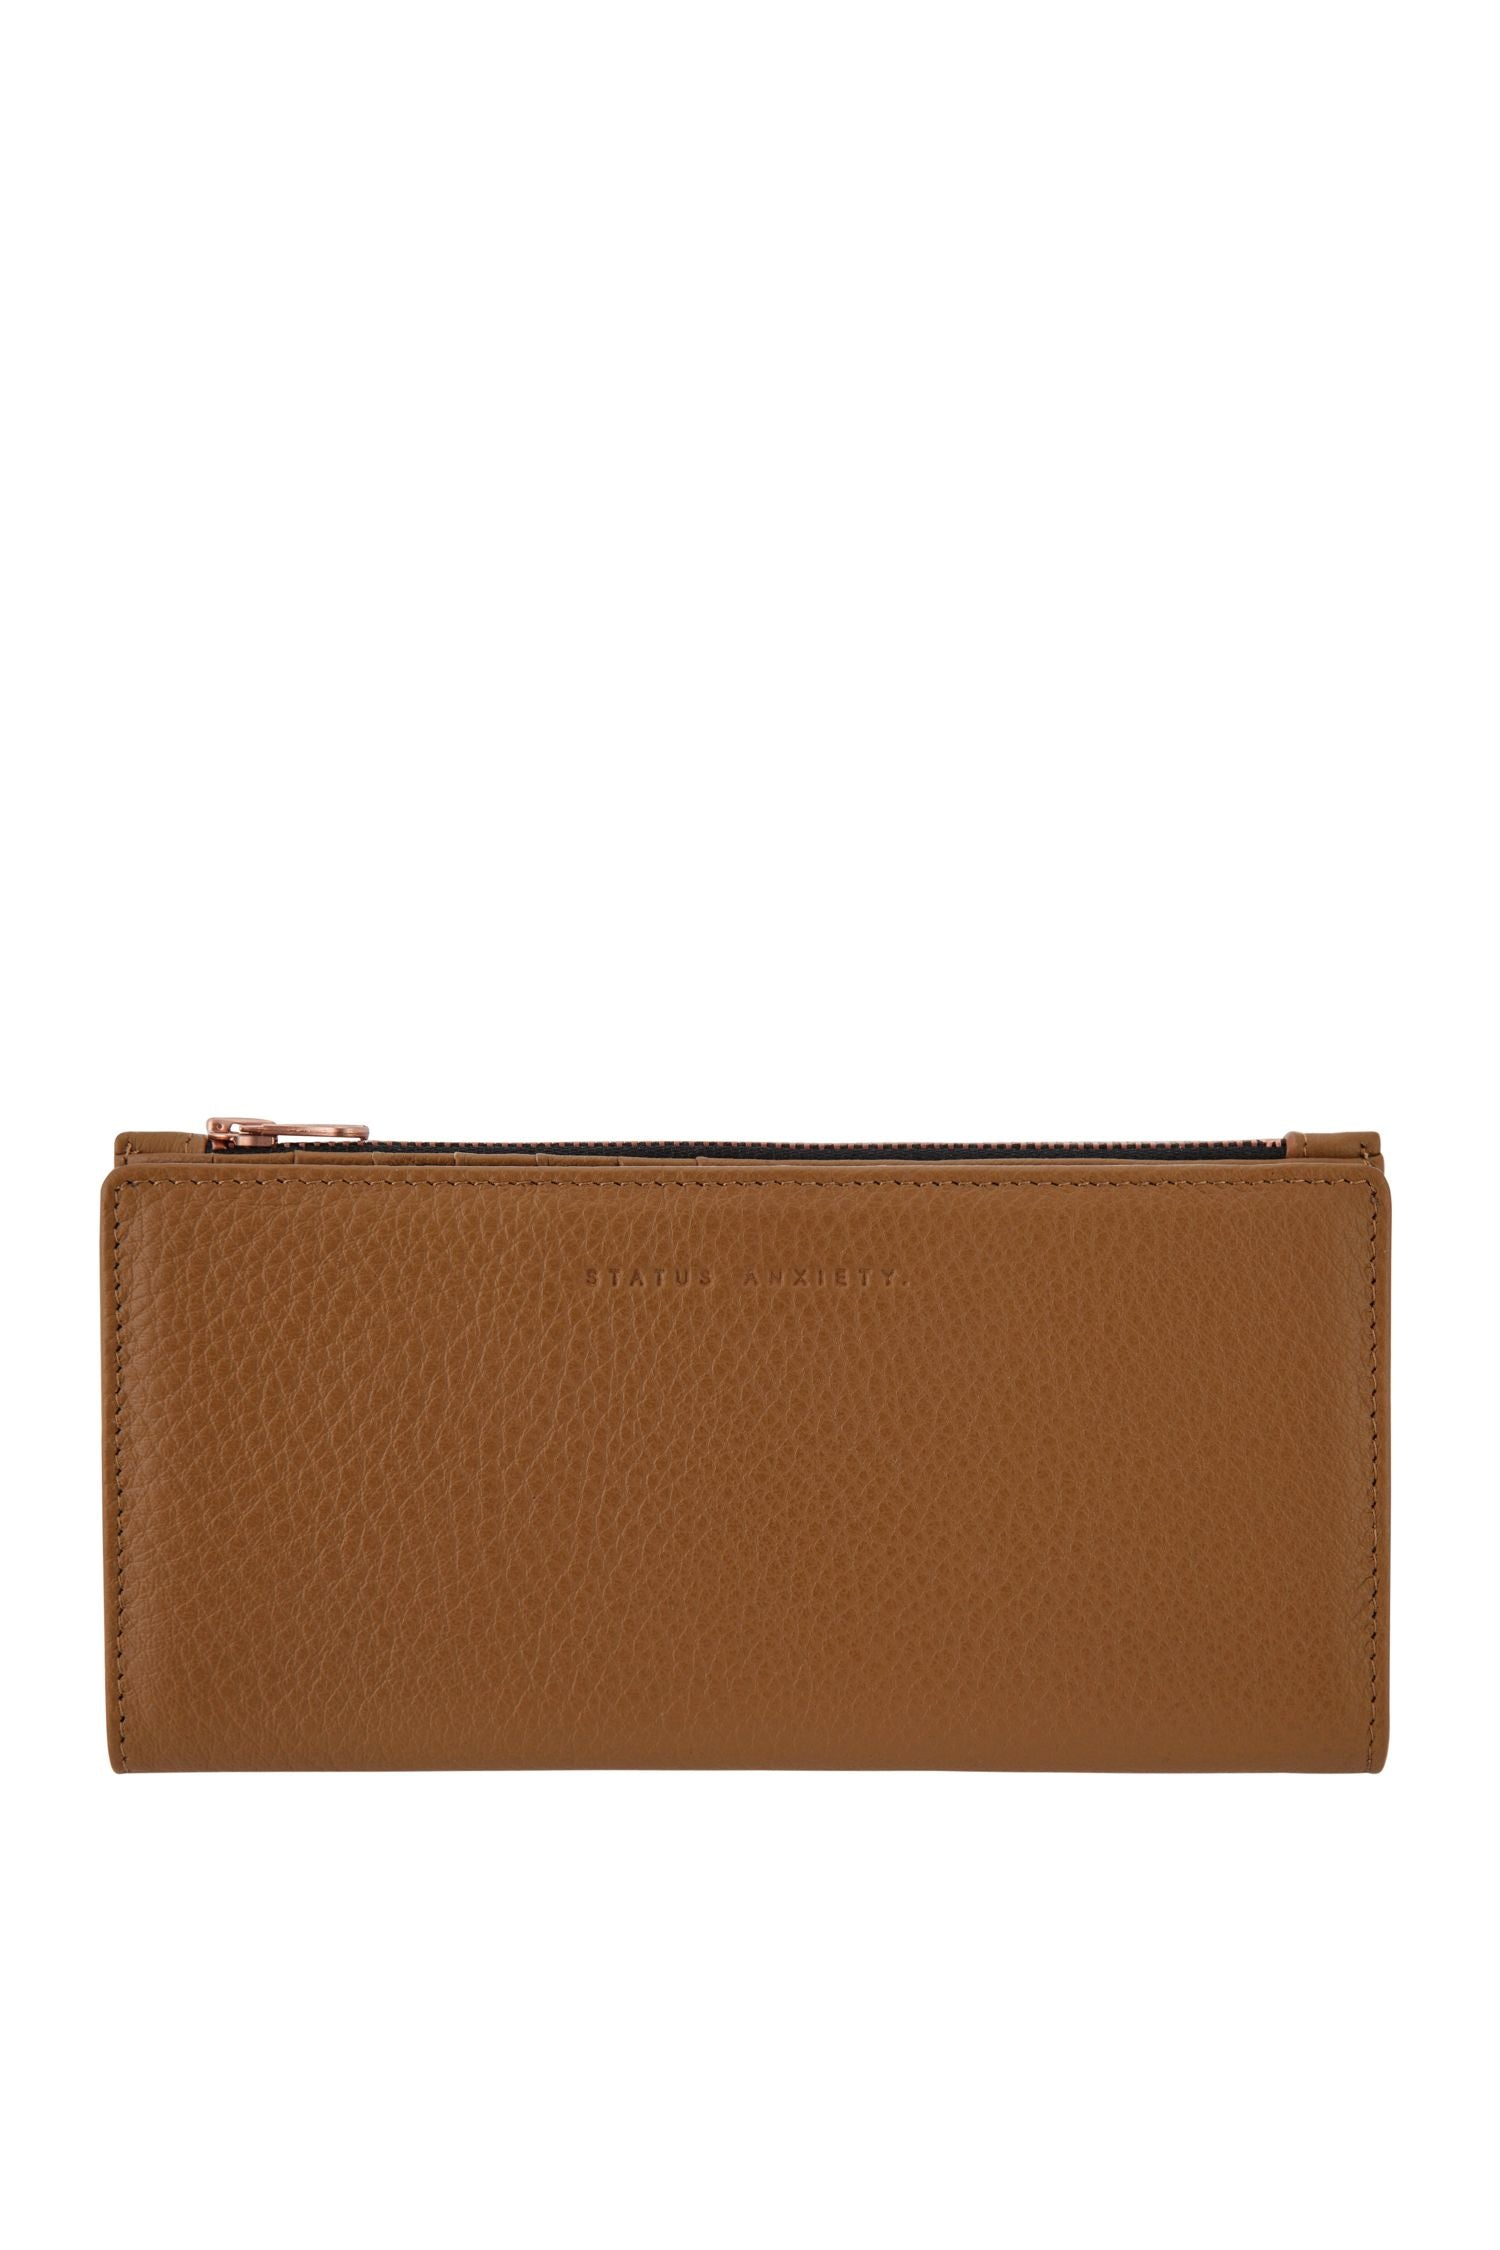 In the Beginning wallet -Tan